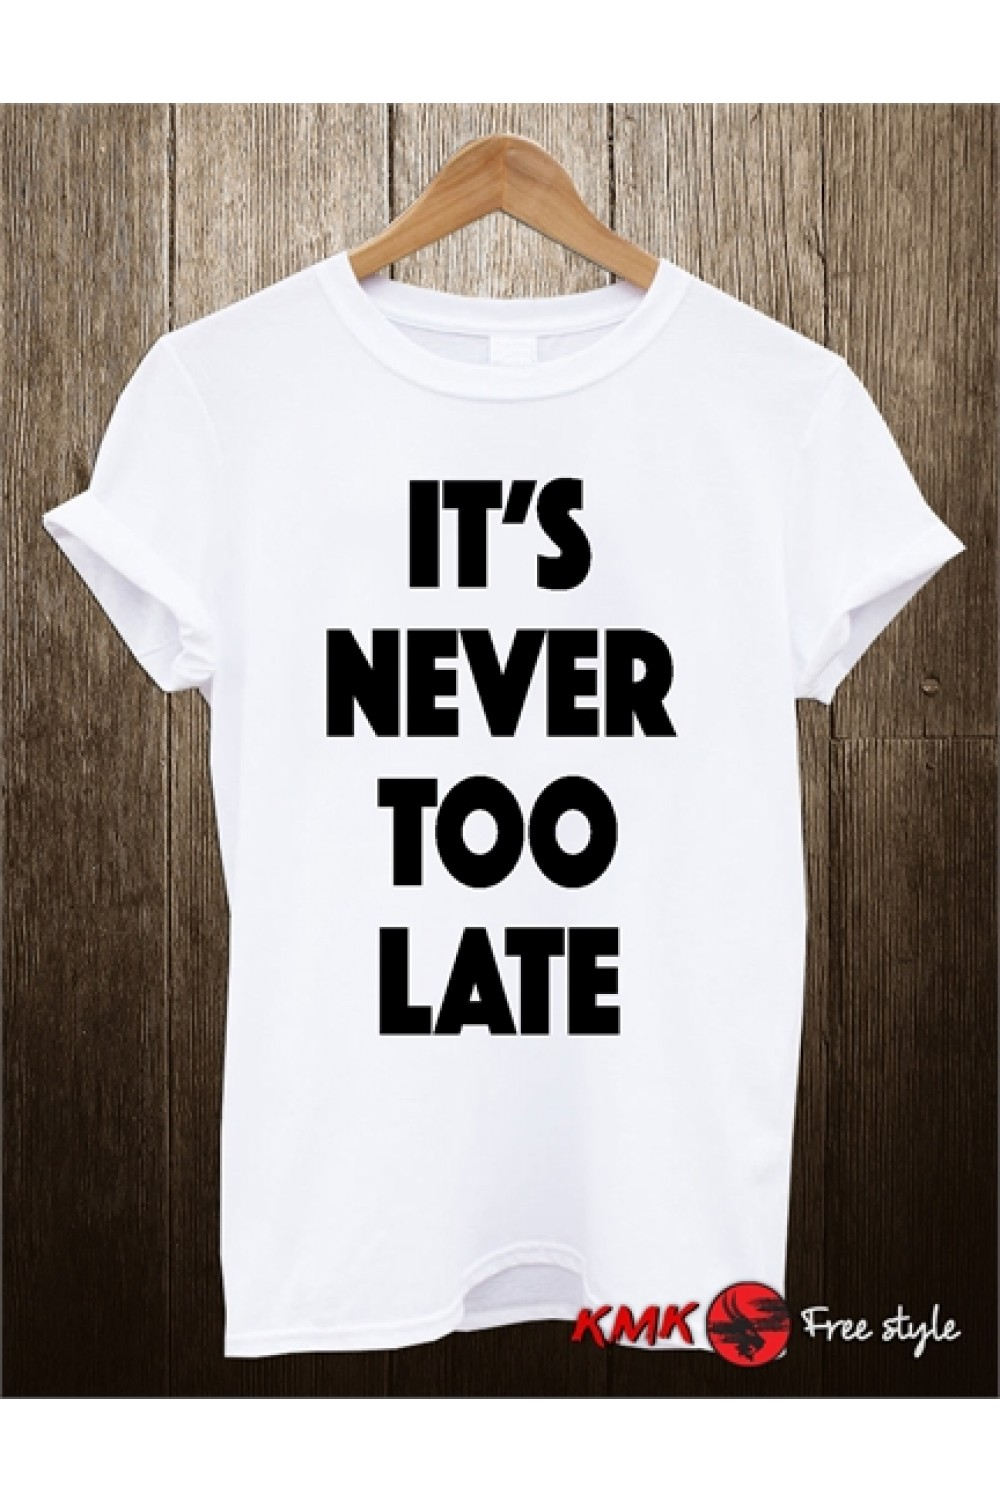 Never too late Printed T shirt | Fitness T-shirt | Motivation tee